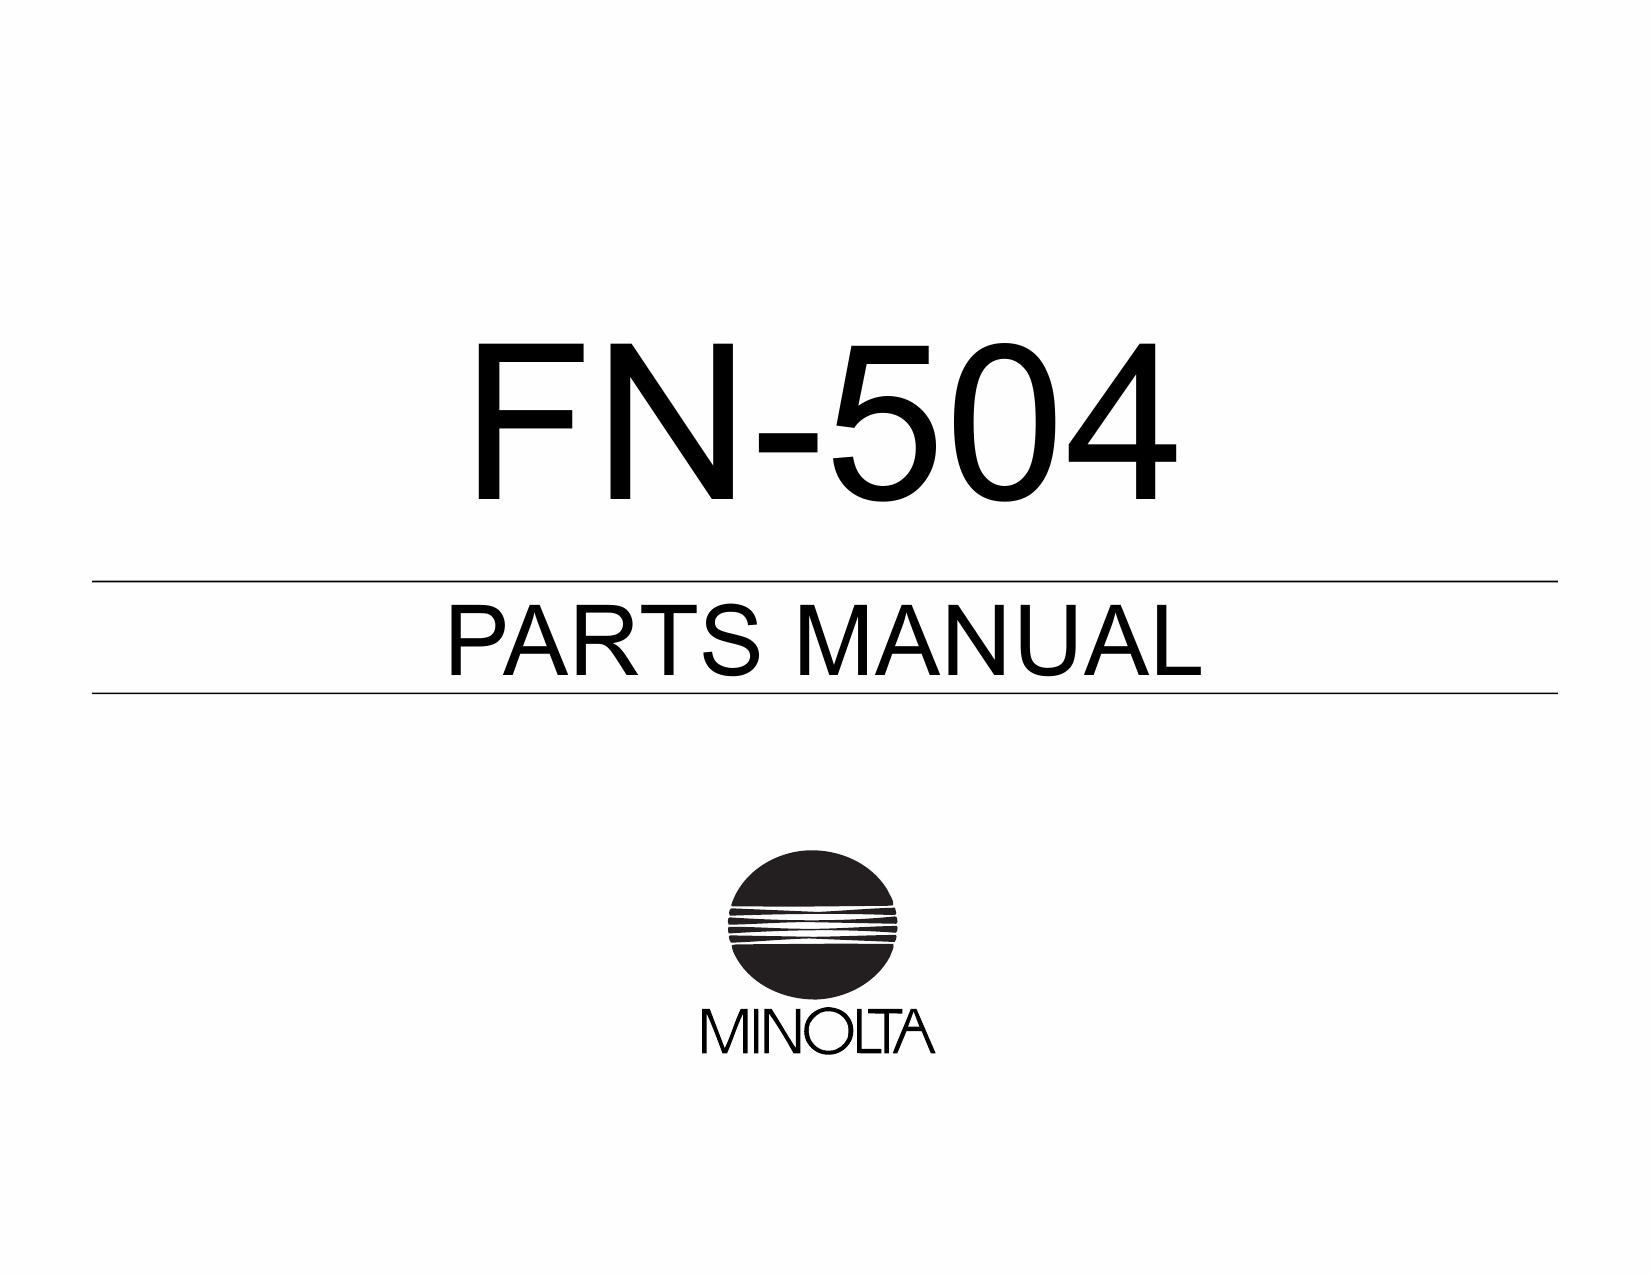 Konica-Minolta Options FN-504 Parts Manual-1